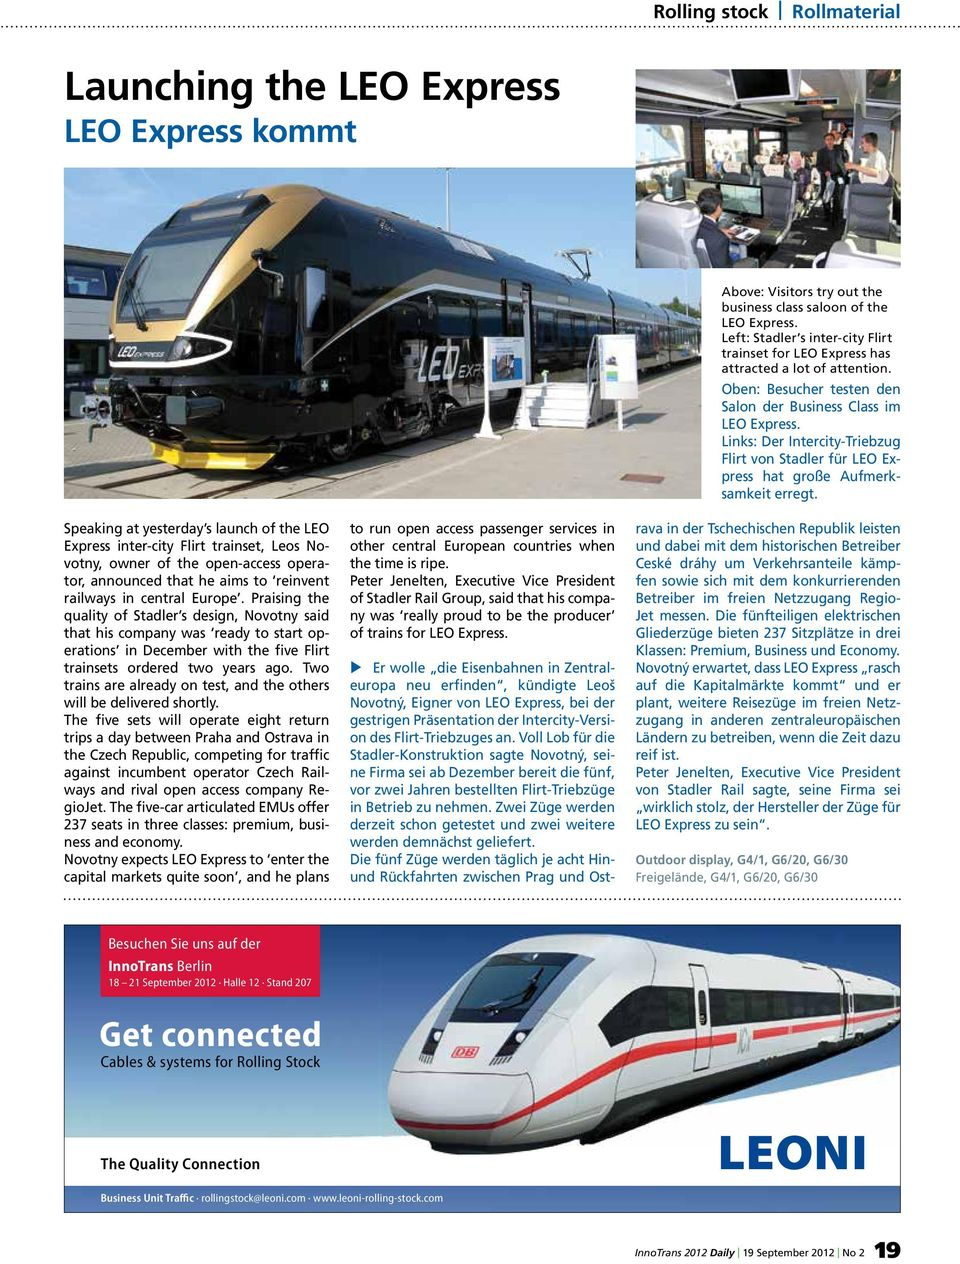 Praising the quality of Stadler s design, Novotny said that his company was ready to start operations in December with the five Flirt trainsets ordered two years ago.